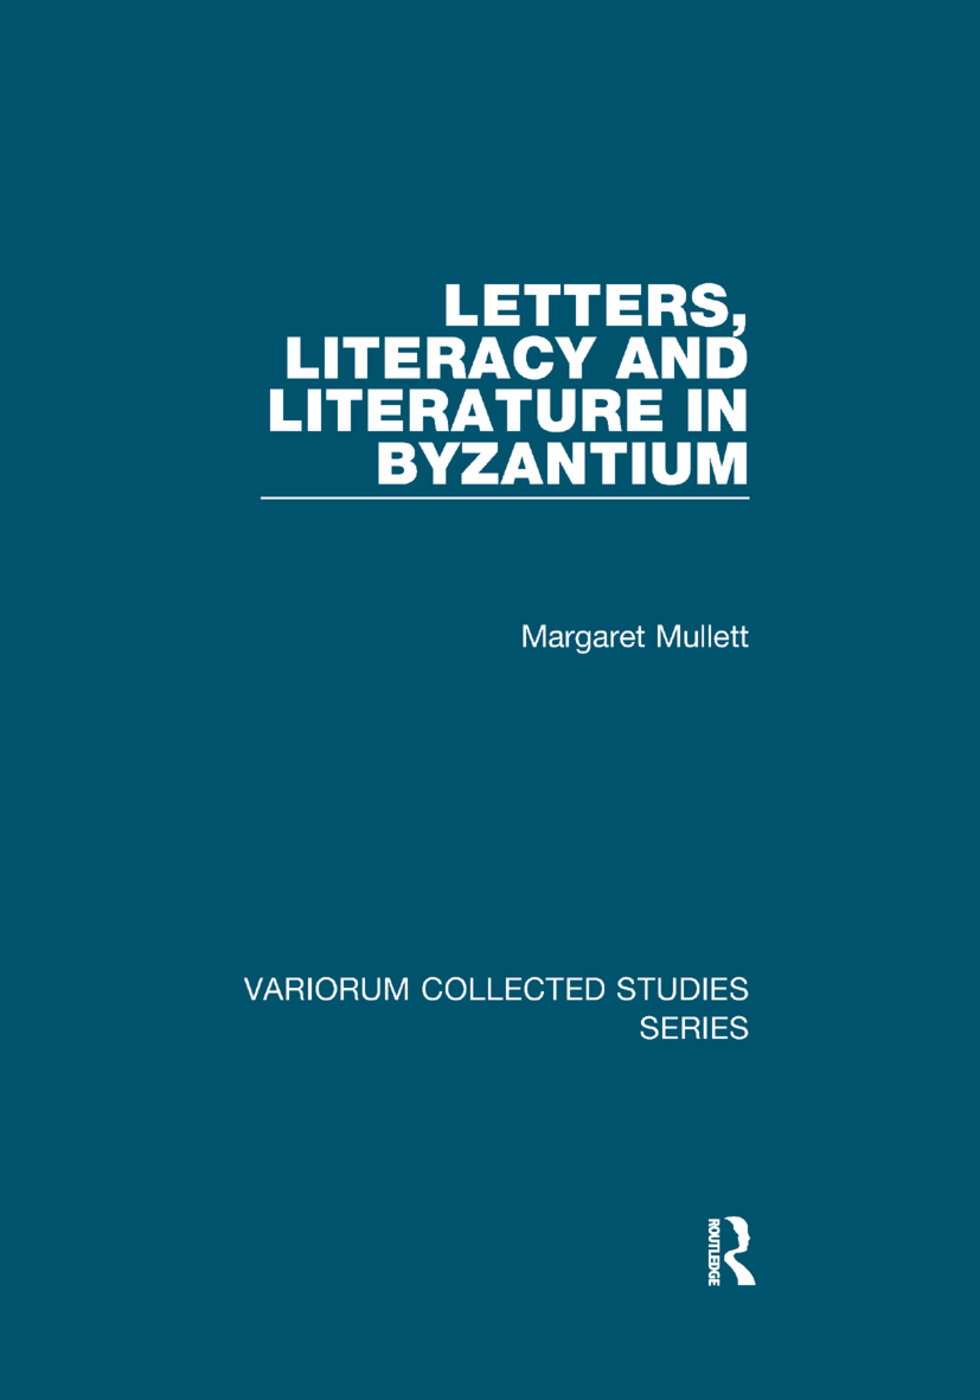 Letters, Literacy and Literature in Byzantium book cover